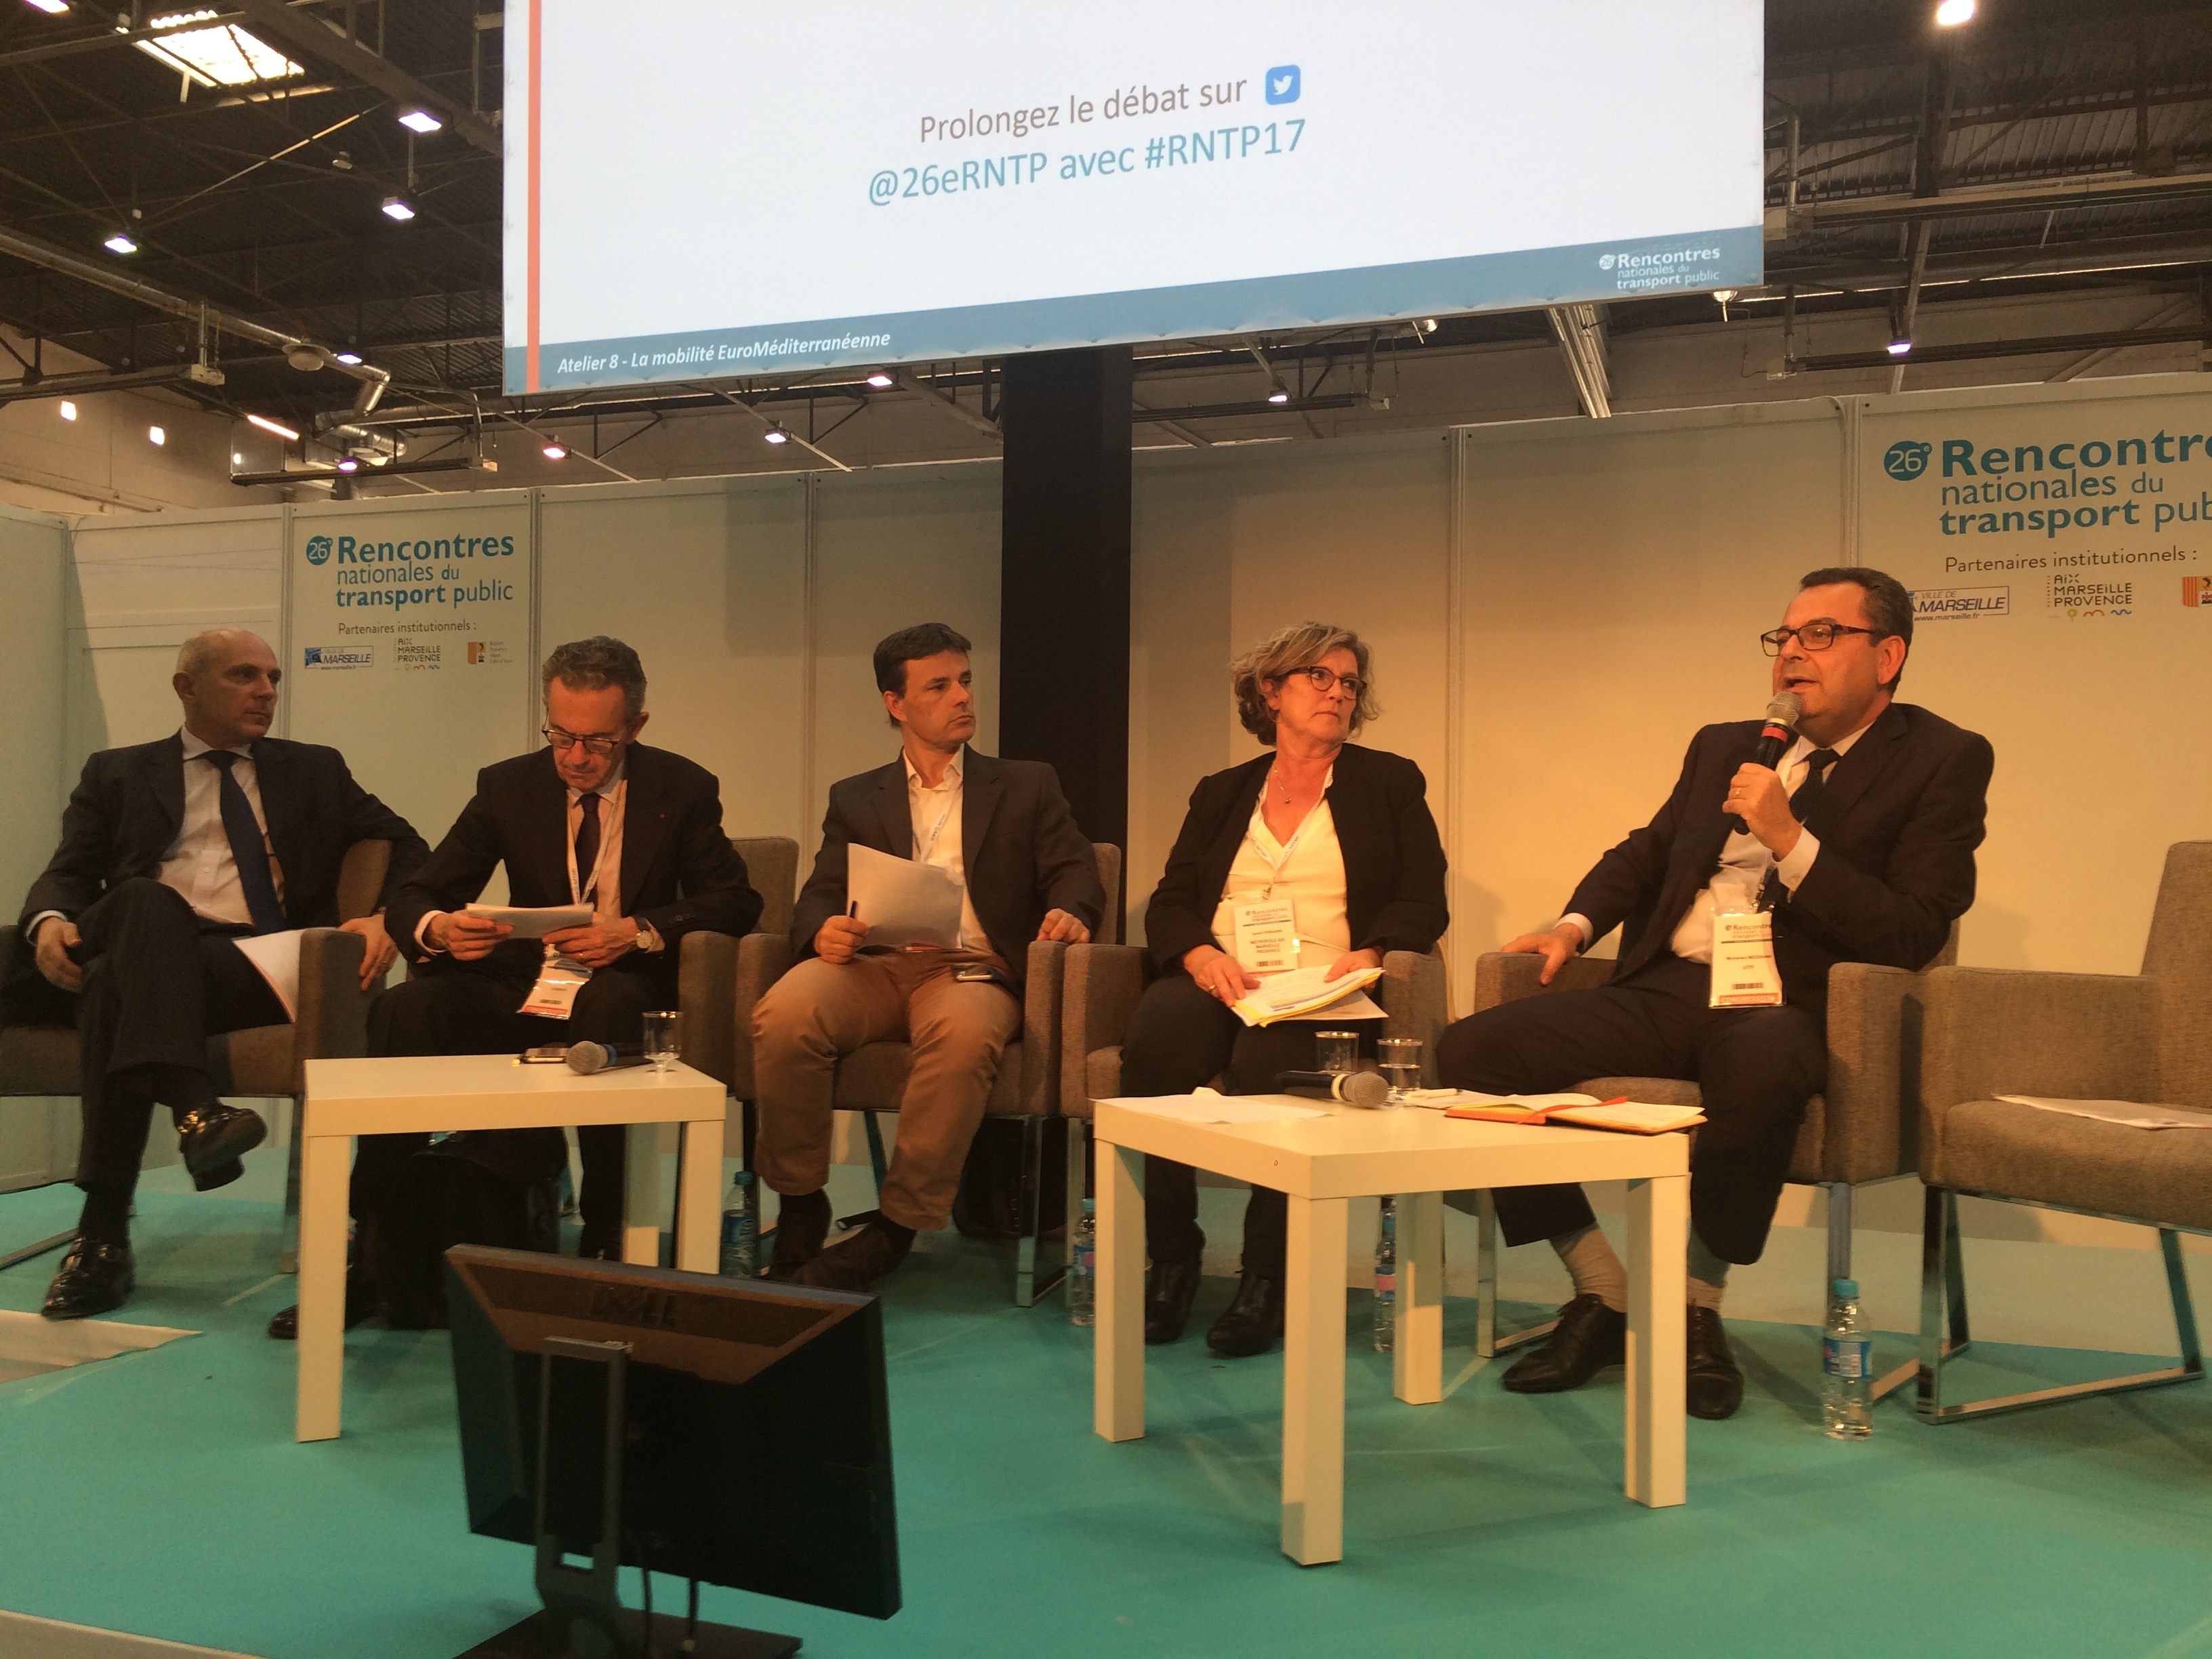 CODATU and GART conduct a joint session together at the occasion of RNTP in Marseille